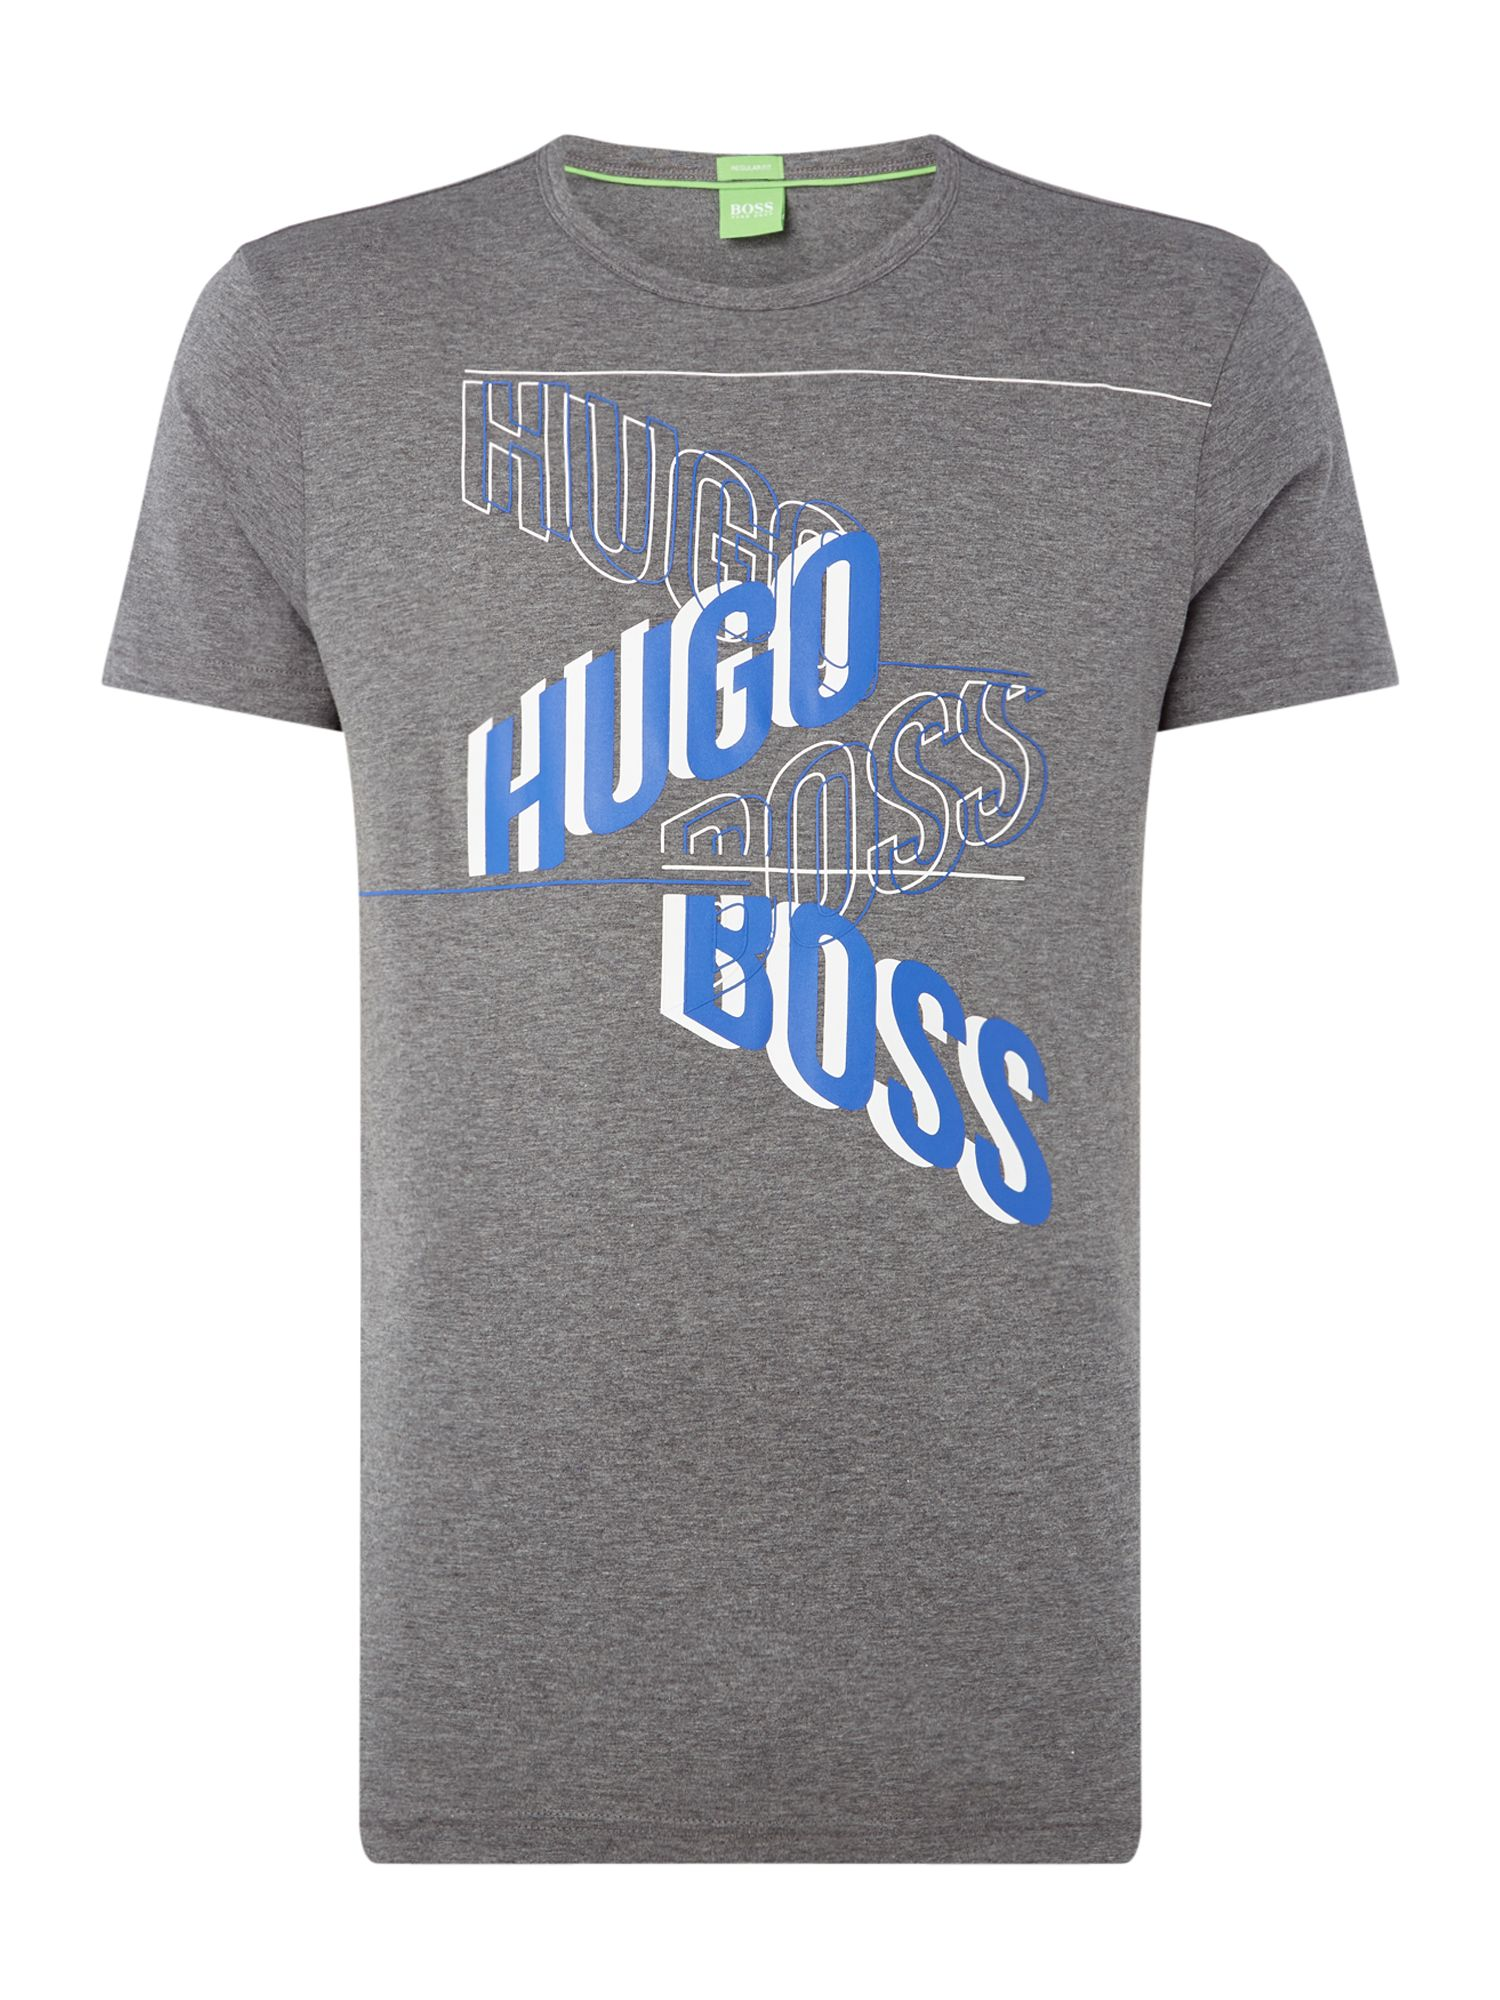 Men's Hugo Boss Large logo tee 2, Grey Marl